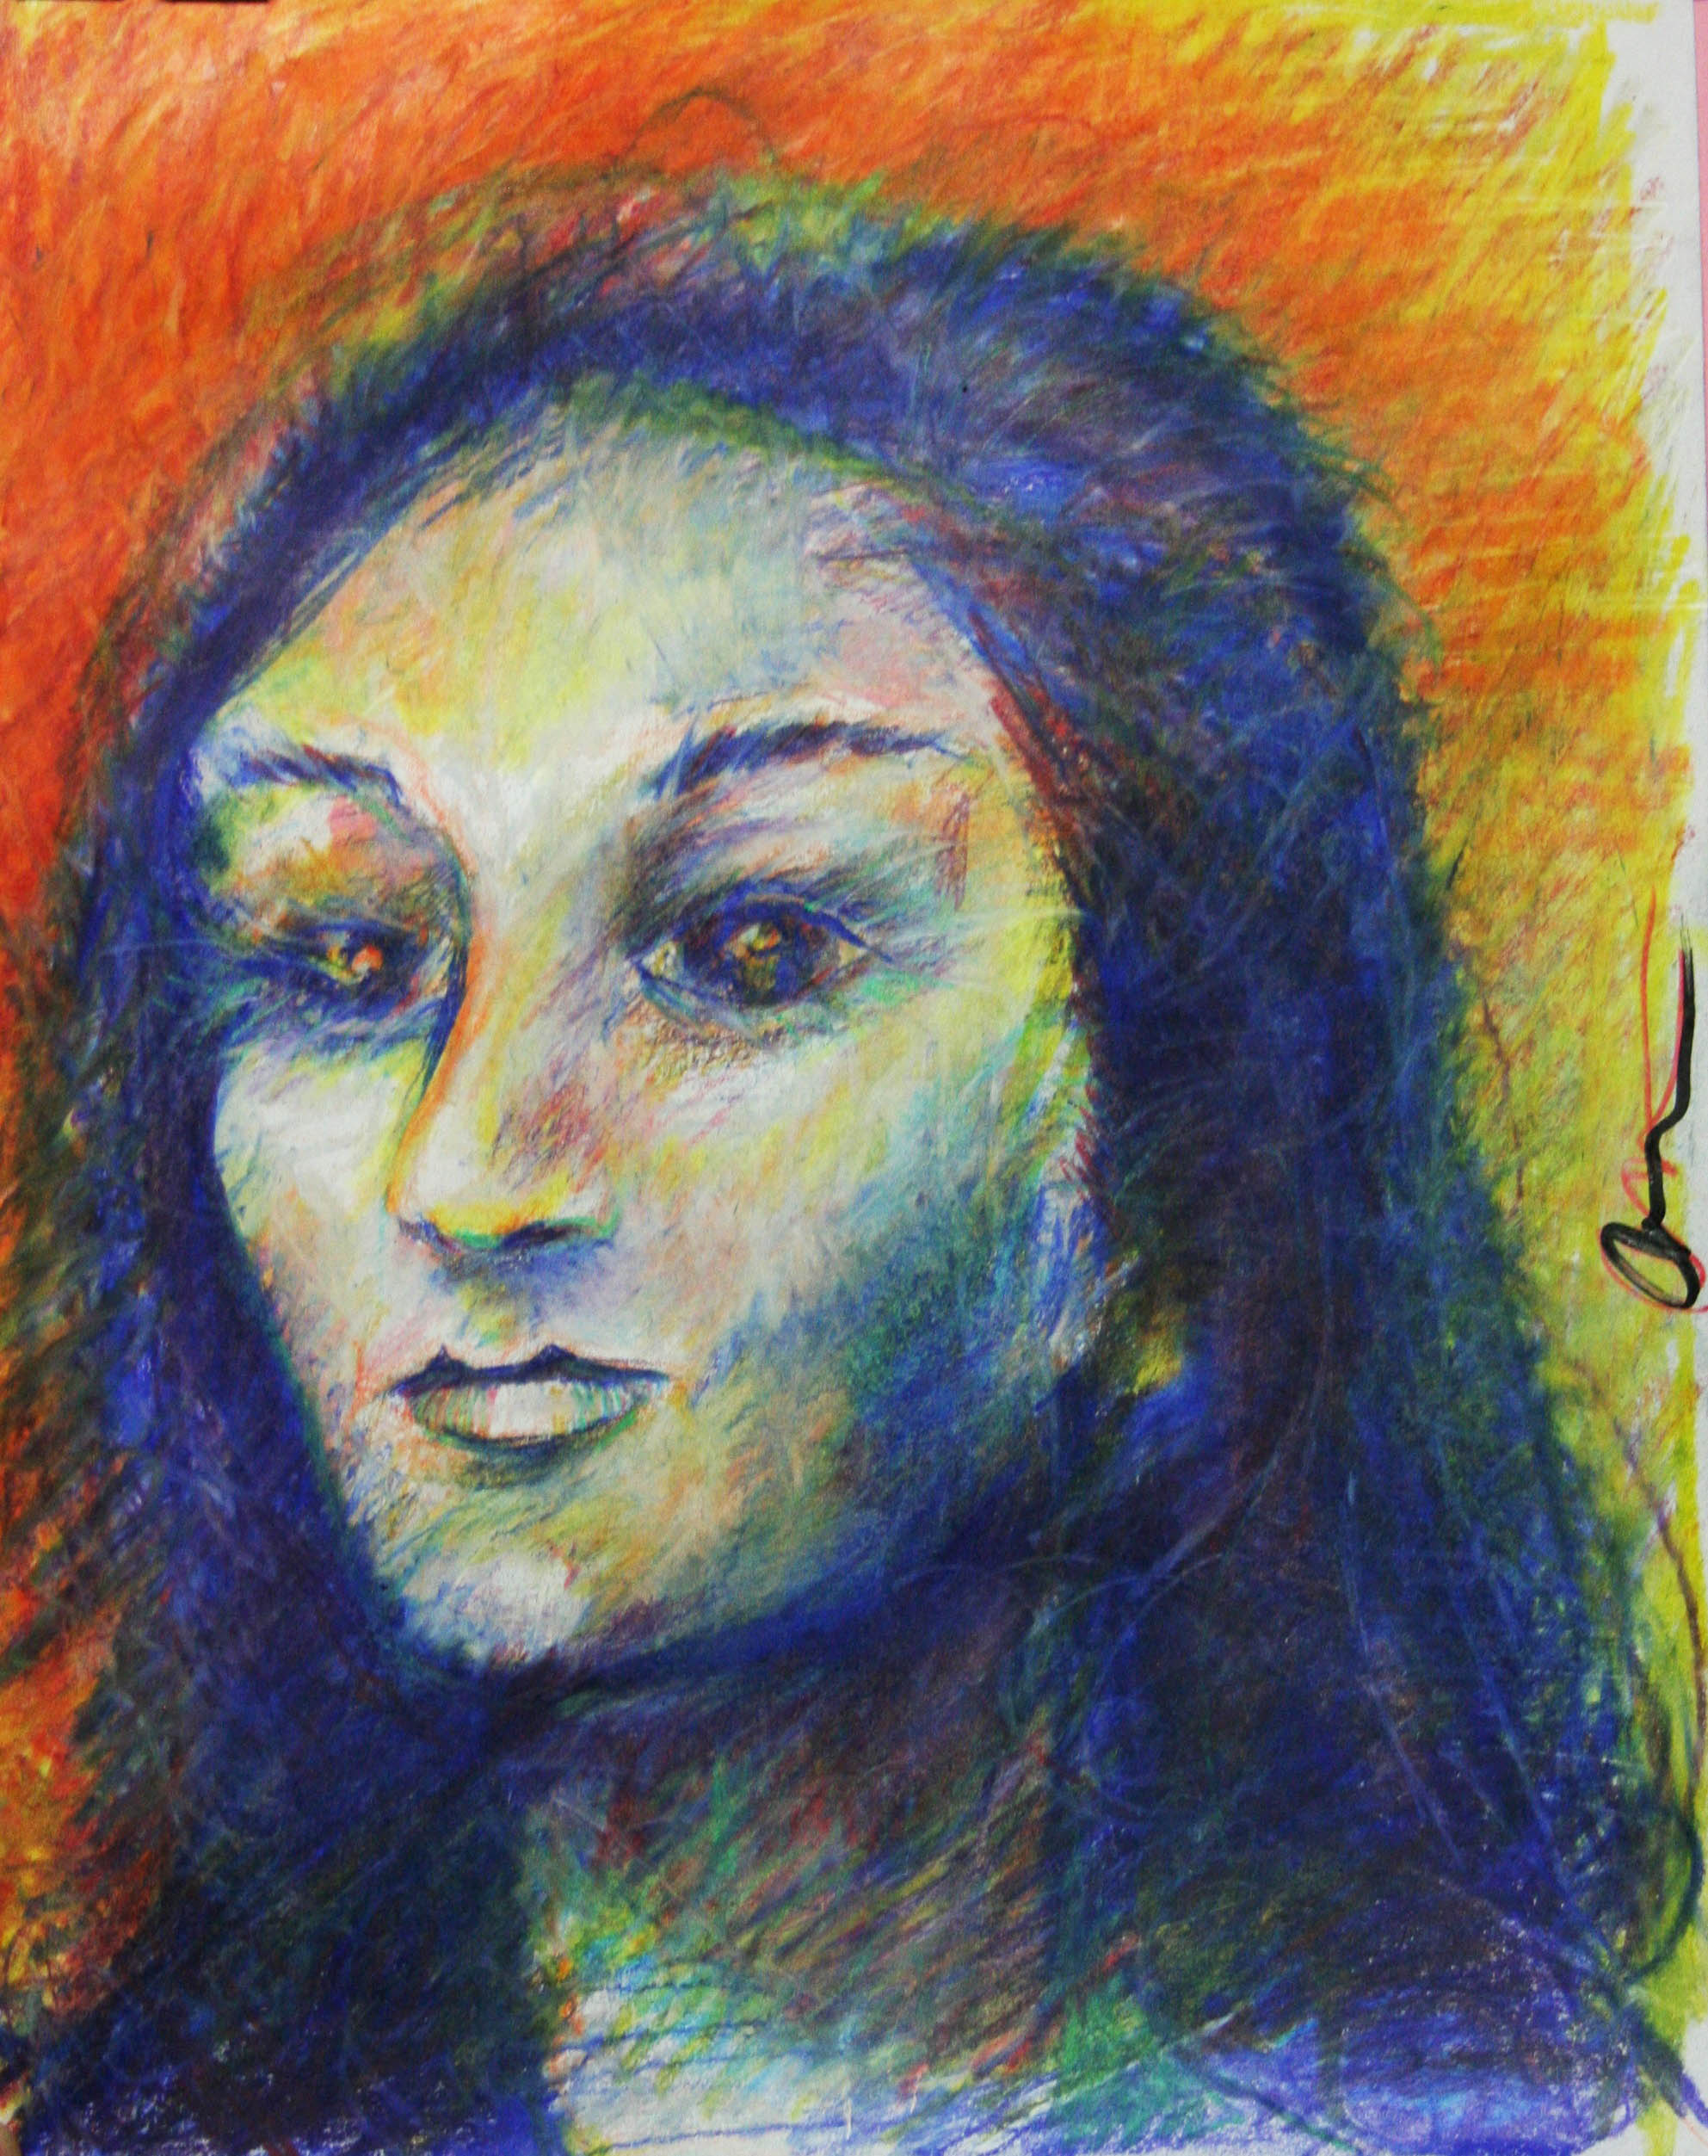 Donald Wash did this 2-hour pastel drawing.